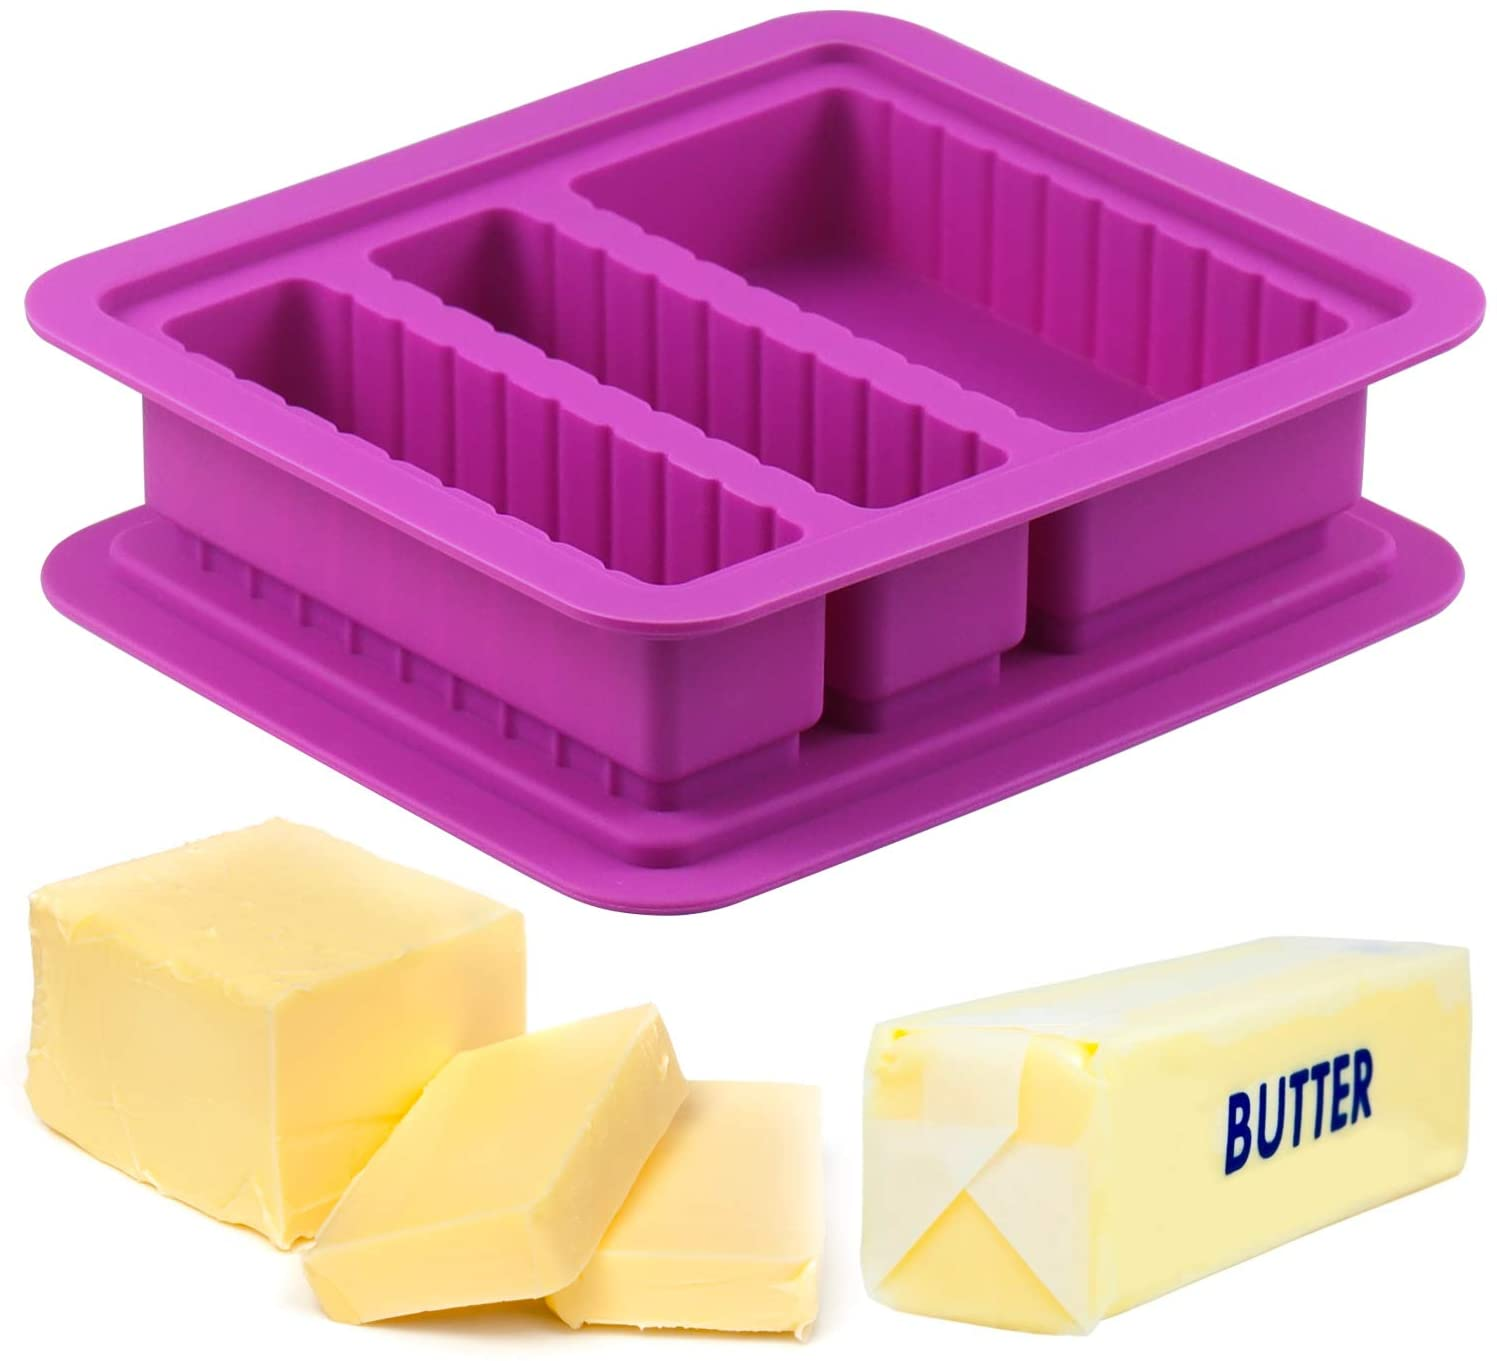 Butter Silicone Tray Mold with Lid, Butter Maker with 2 Standard Cavities and A Large Cavity Rectangle Container for Butter, Soap Bar, Energy Bar, Muffin, Brownie, Cornbread, Cake, Pudding